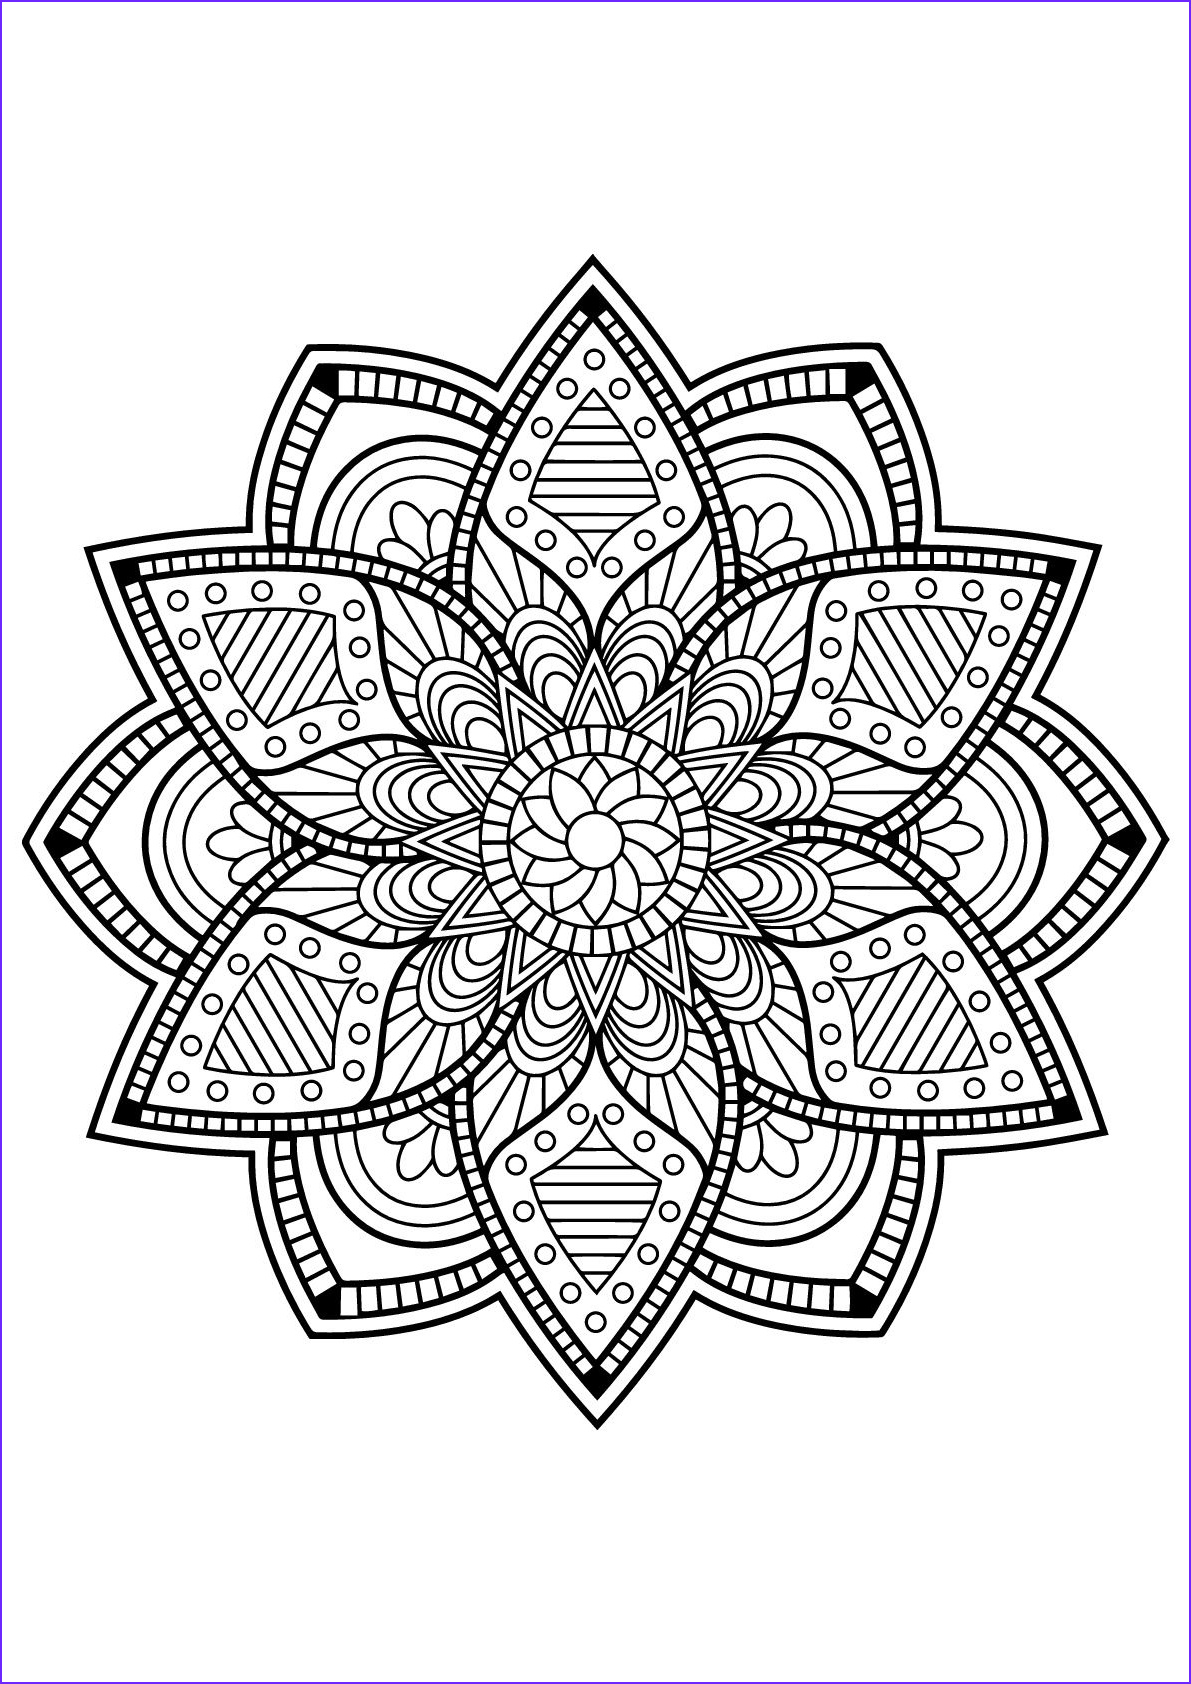 Free Printable Mandalas Coloring Pages Adults Inspirational Photos Here are Difficult Mandalas Coloring Pages for Adults to